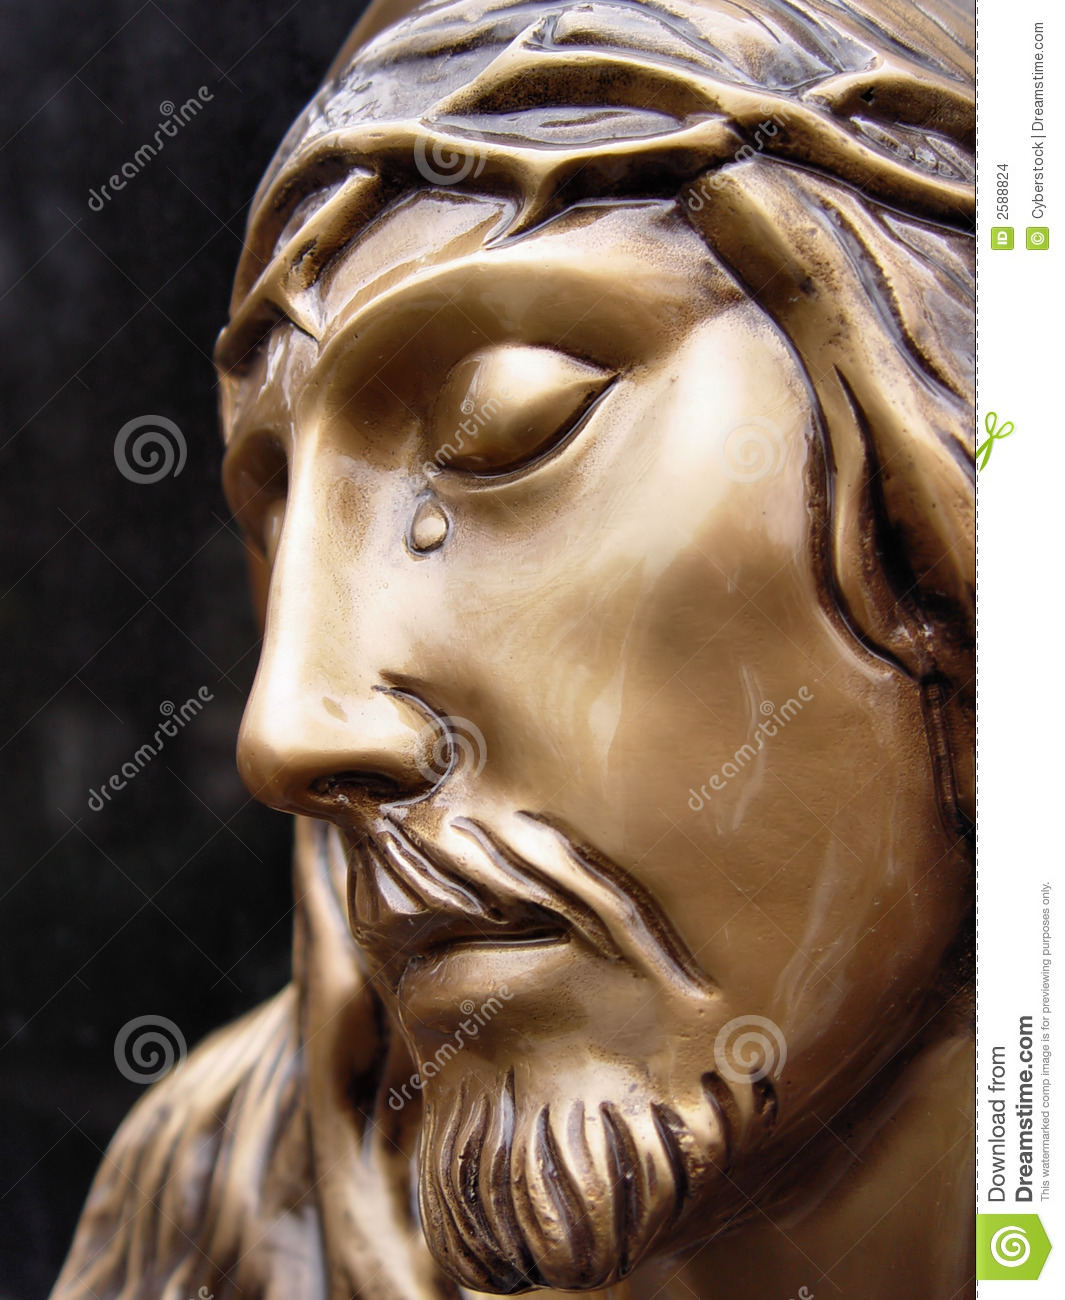 Face of jesus stock photo. Image of jesus, ancient ...